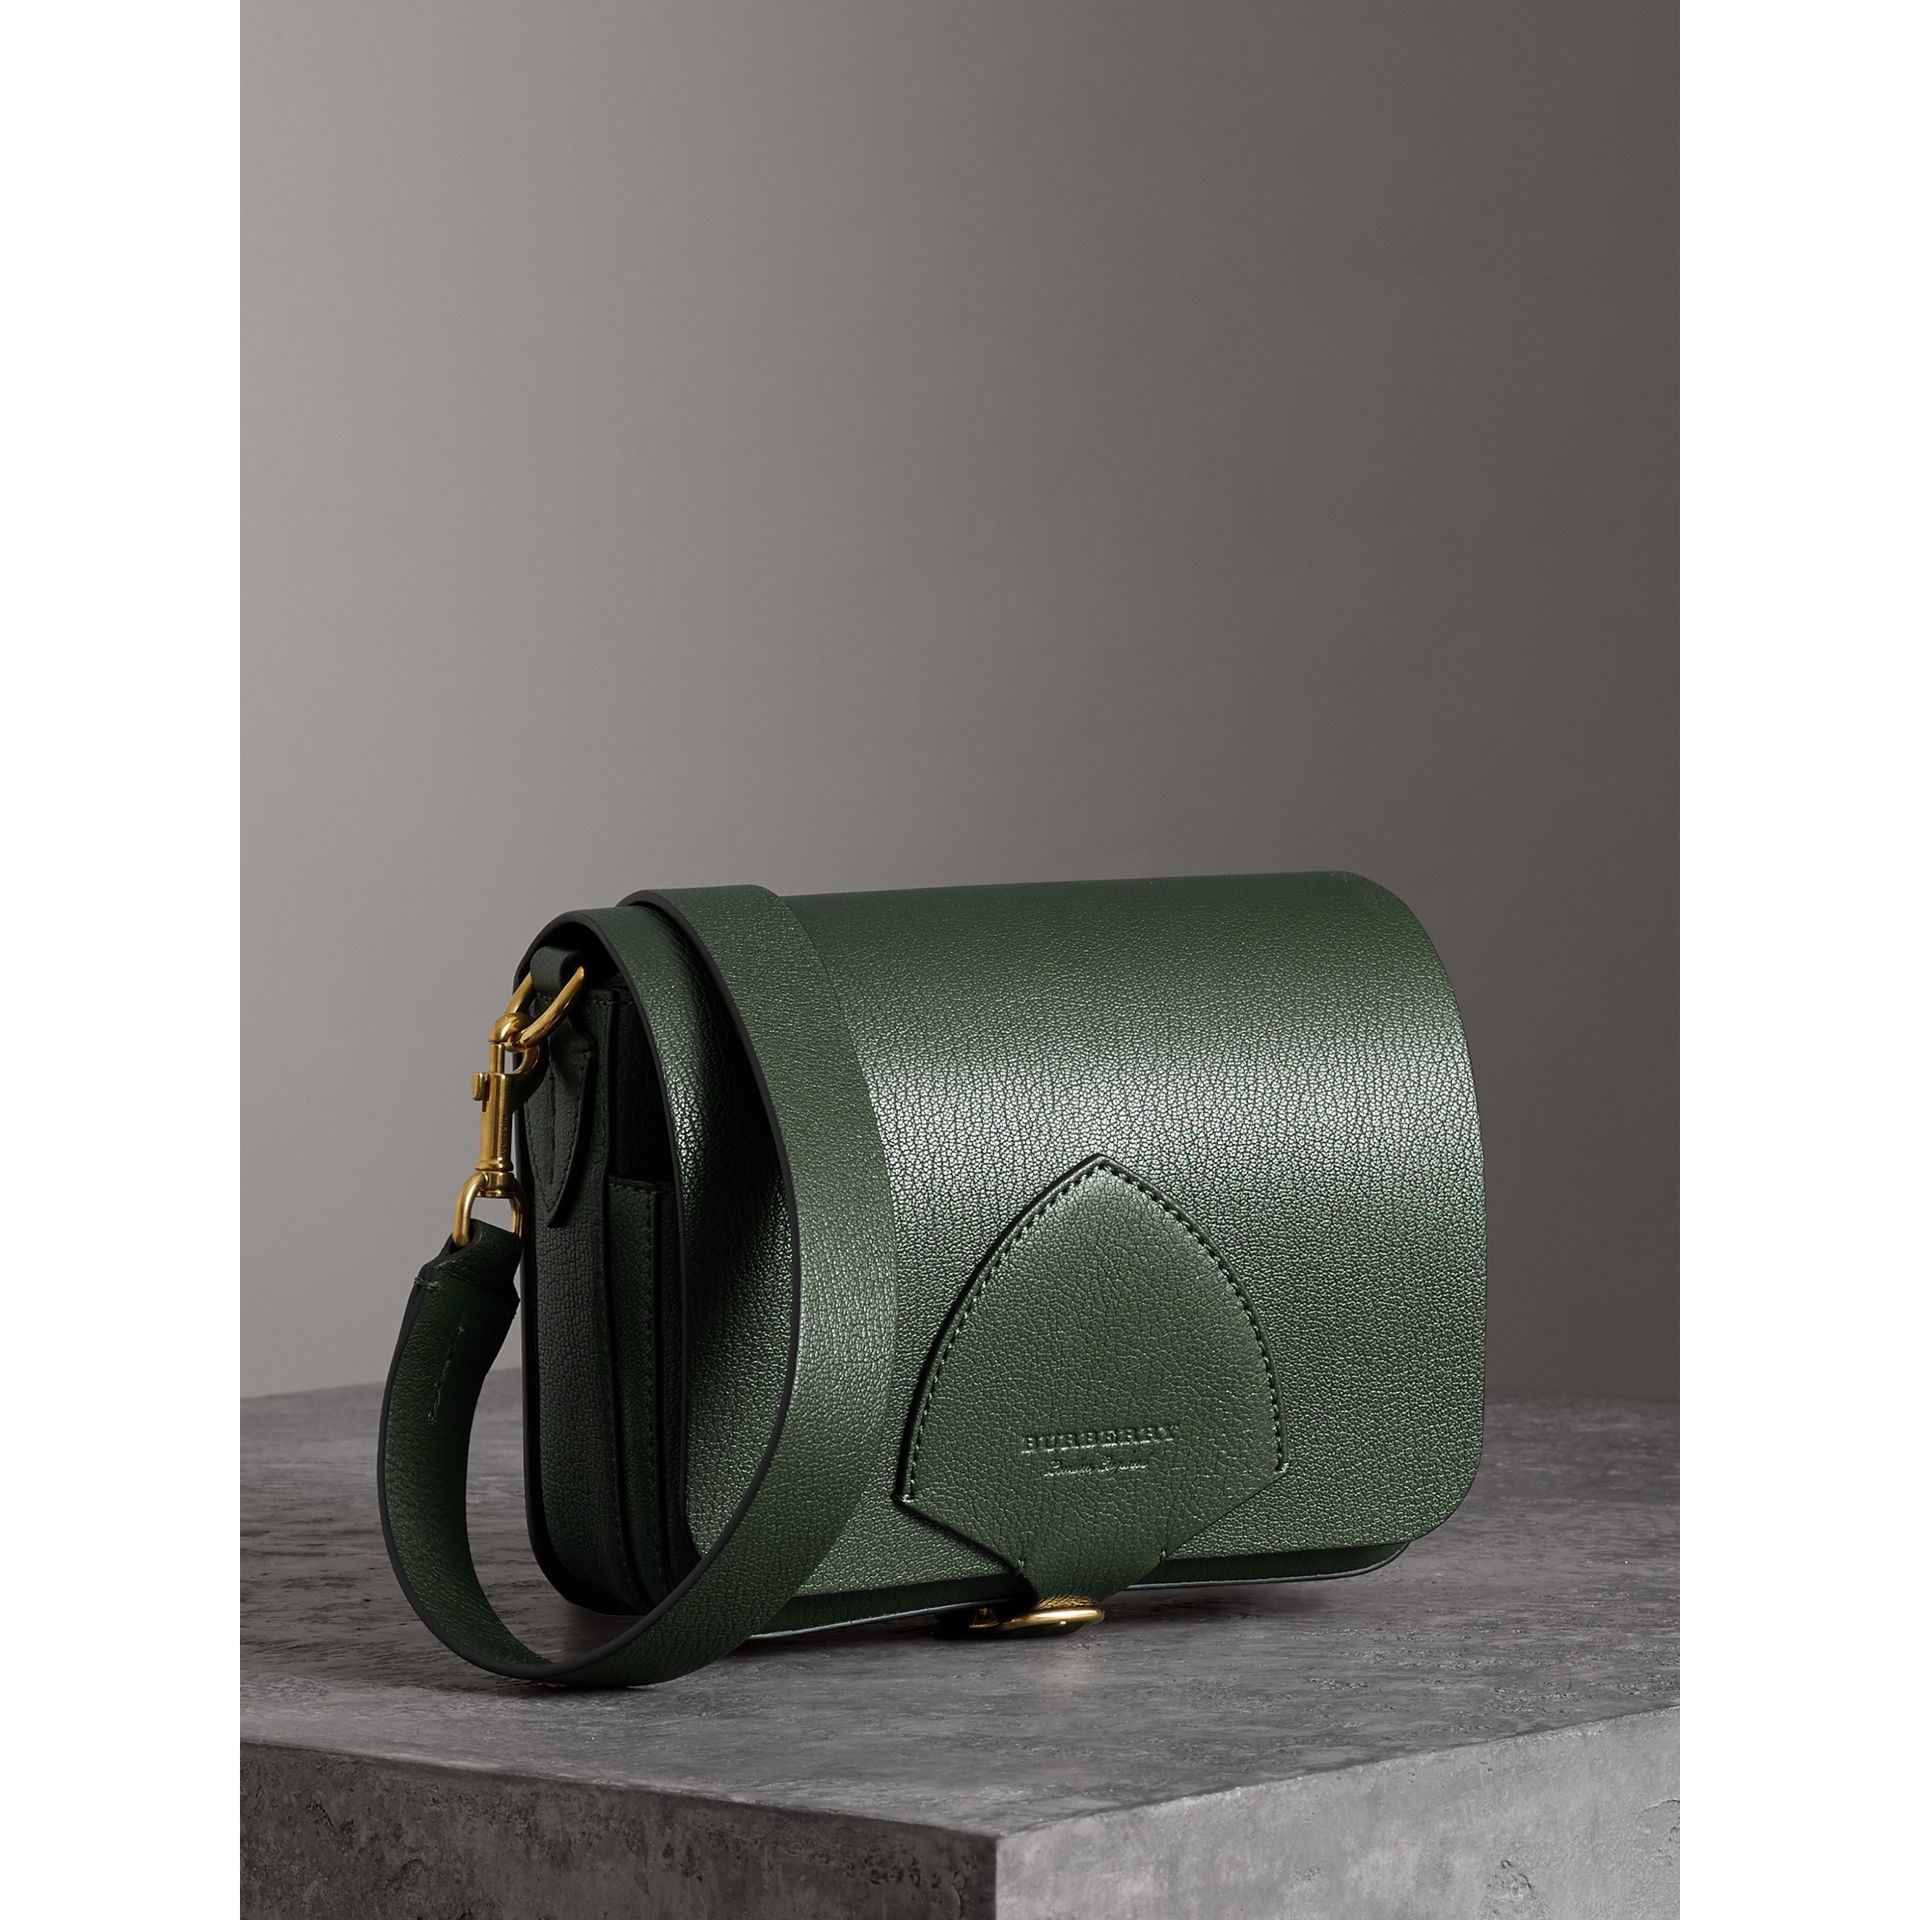 The Square Satchel in Leather in Dark Forest Green - Women | Burberry United Kingdom - gallery image 6